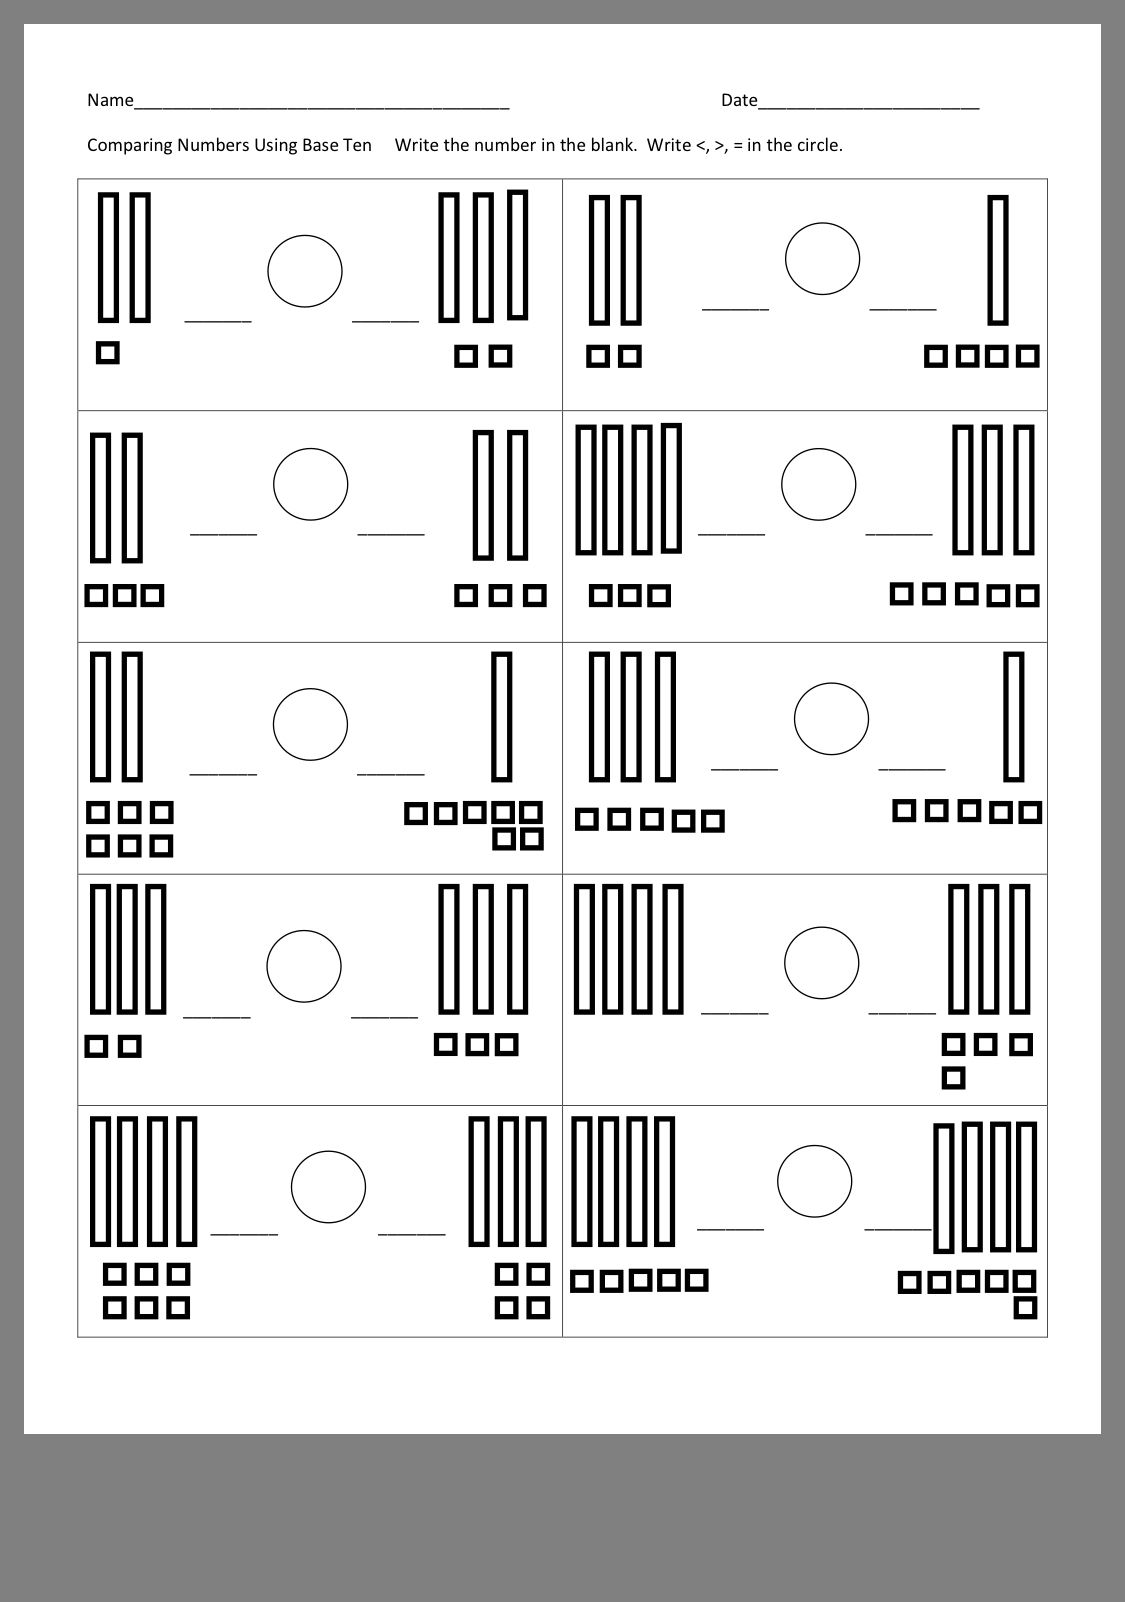 Pin By Asimina Karapanagiotides On Mrskpas First Grade First Grade Comparing Numbers Writing [ 1602 x 1125 Pixel ]